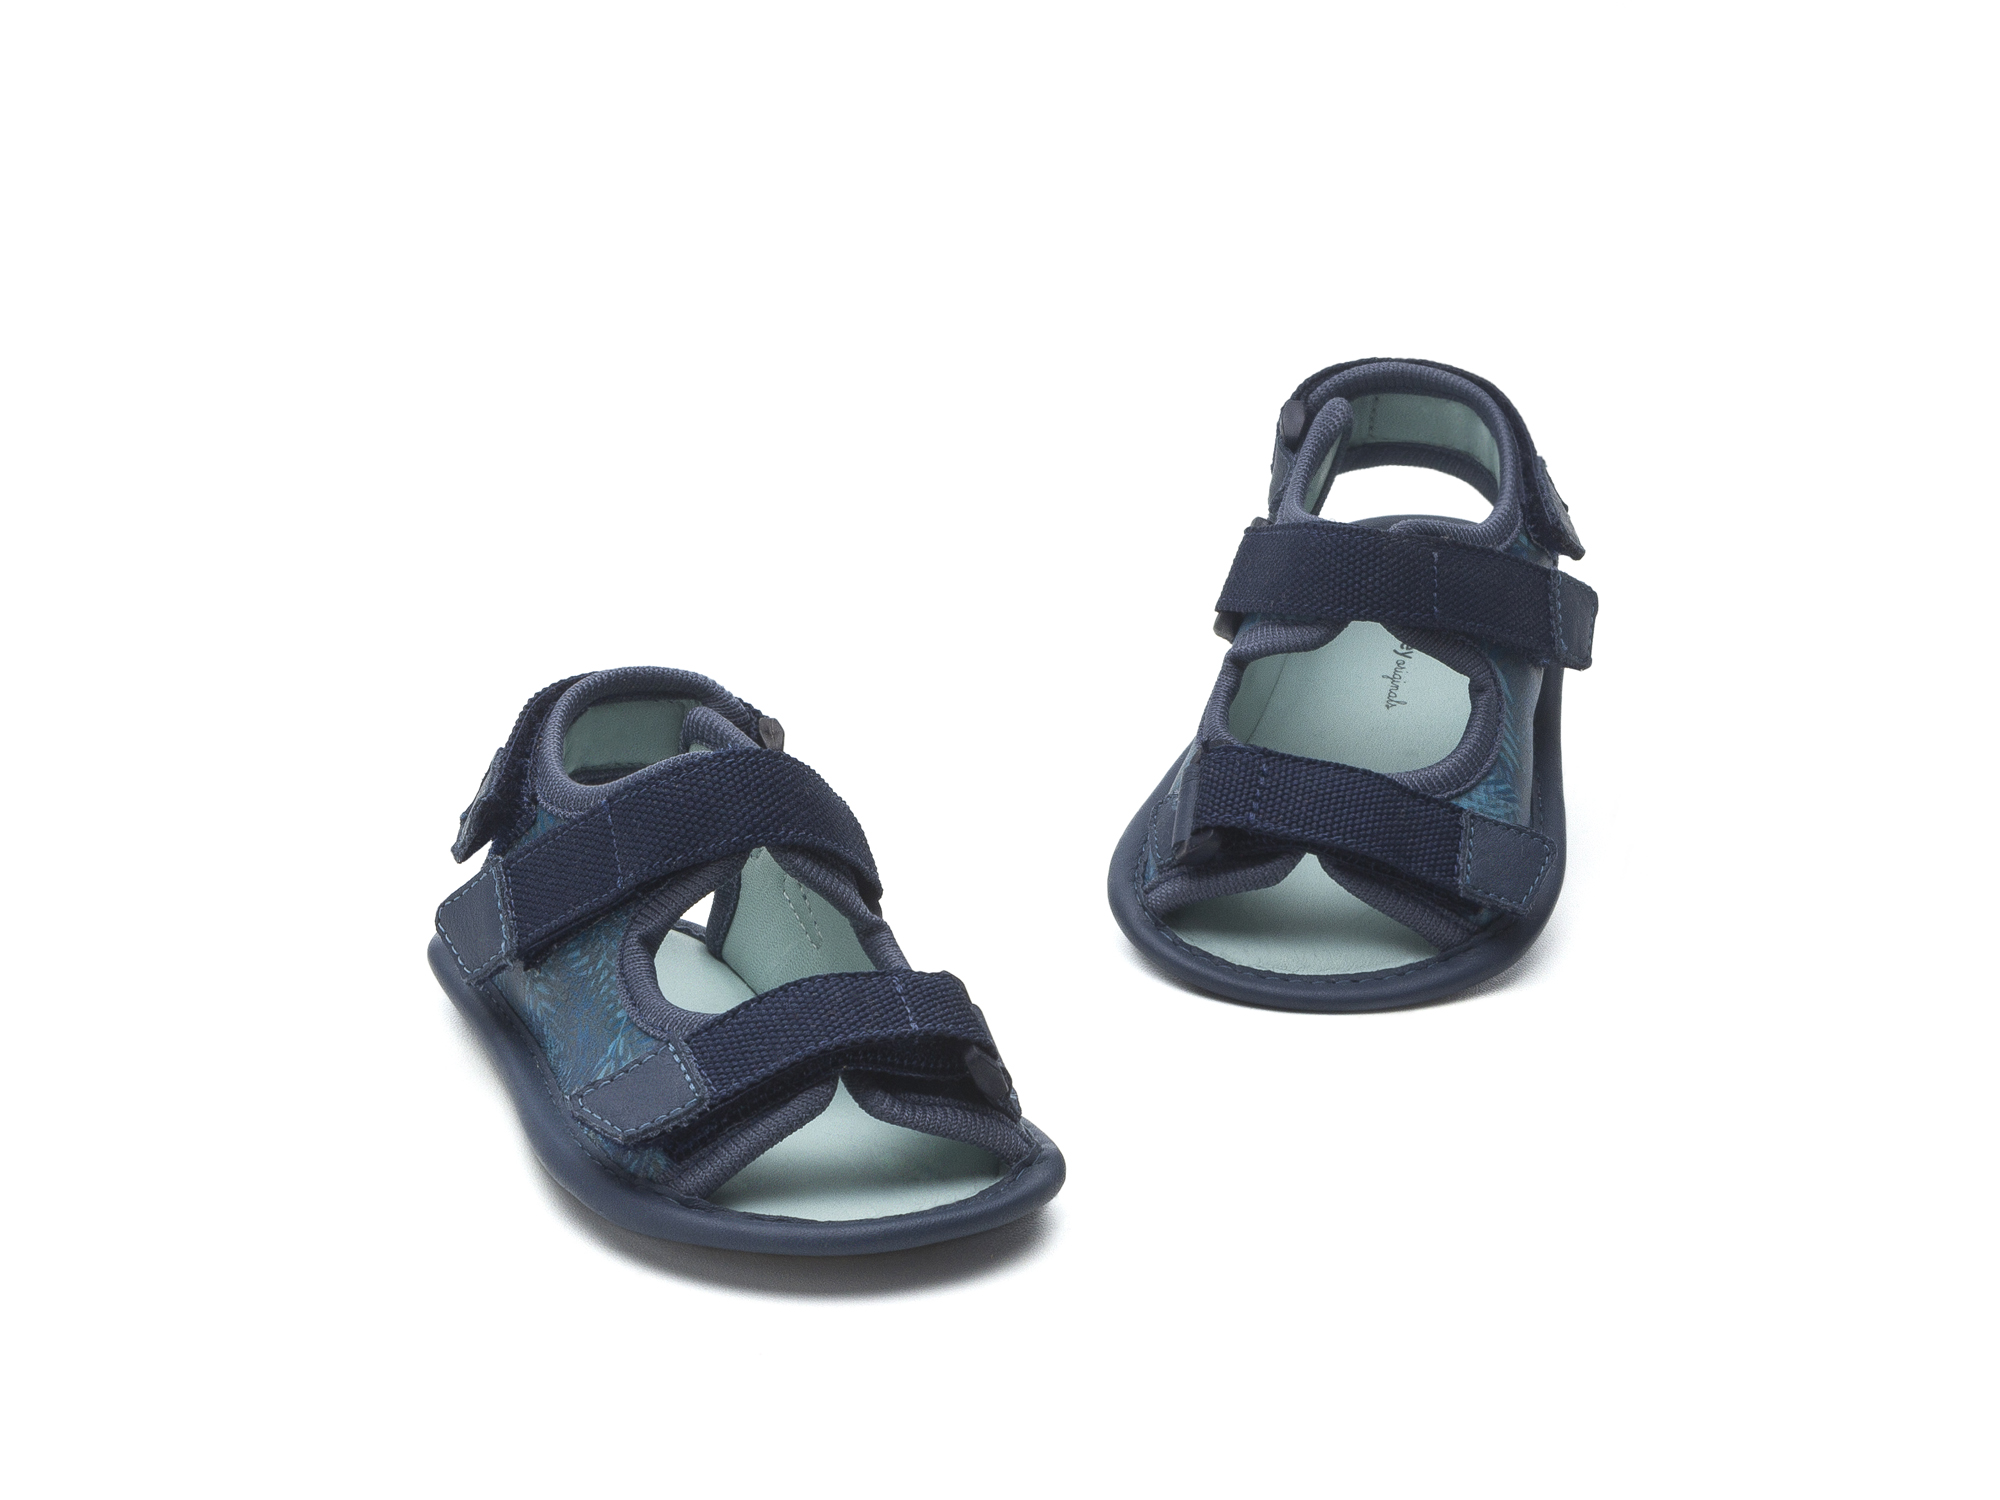 Sandal Boardy Blue Palm/ Rustic Blue Baby for ages 0 to 2 years - 2